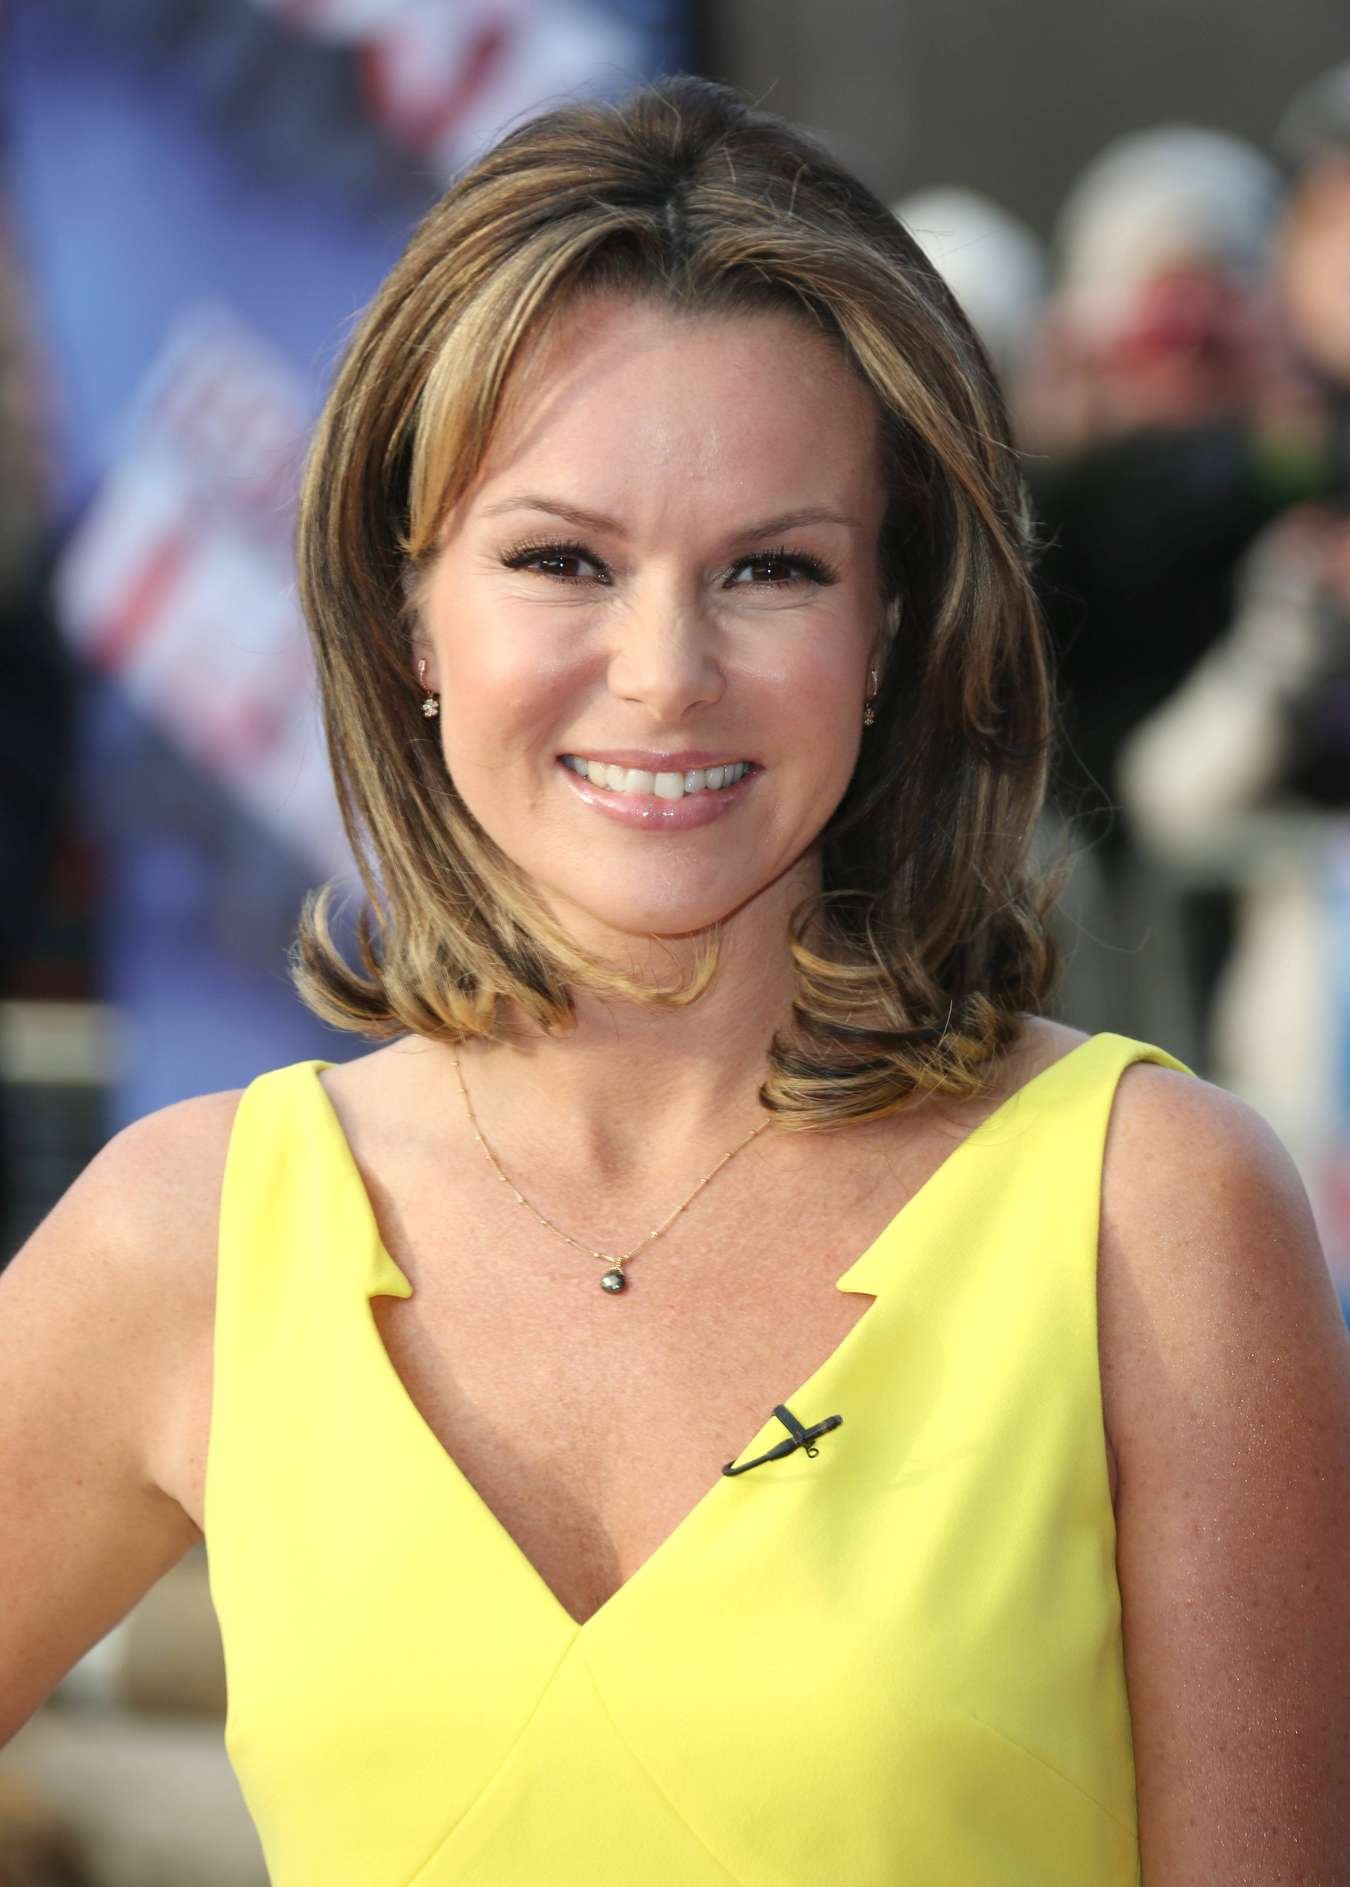 Amanda Holden – 2013 Britain's Got Talent Auditions in Cardiff